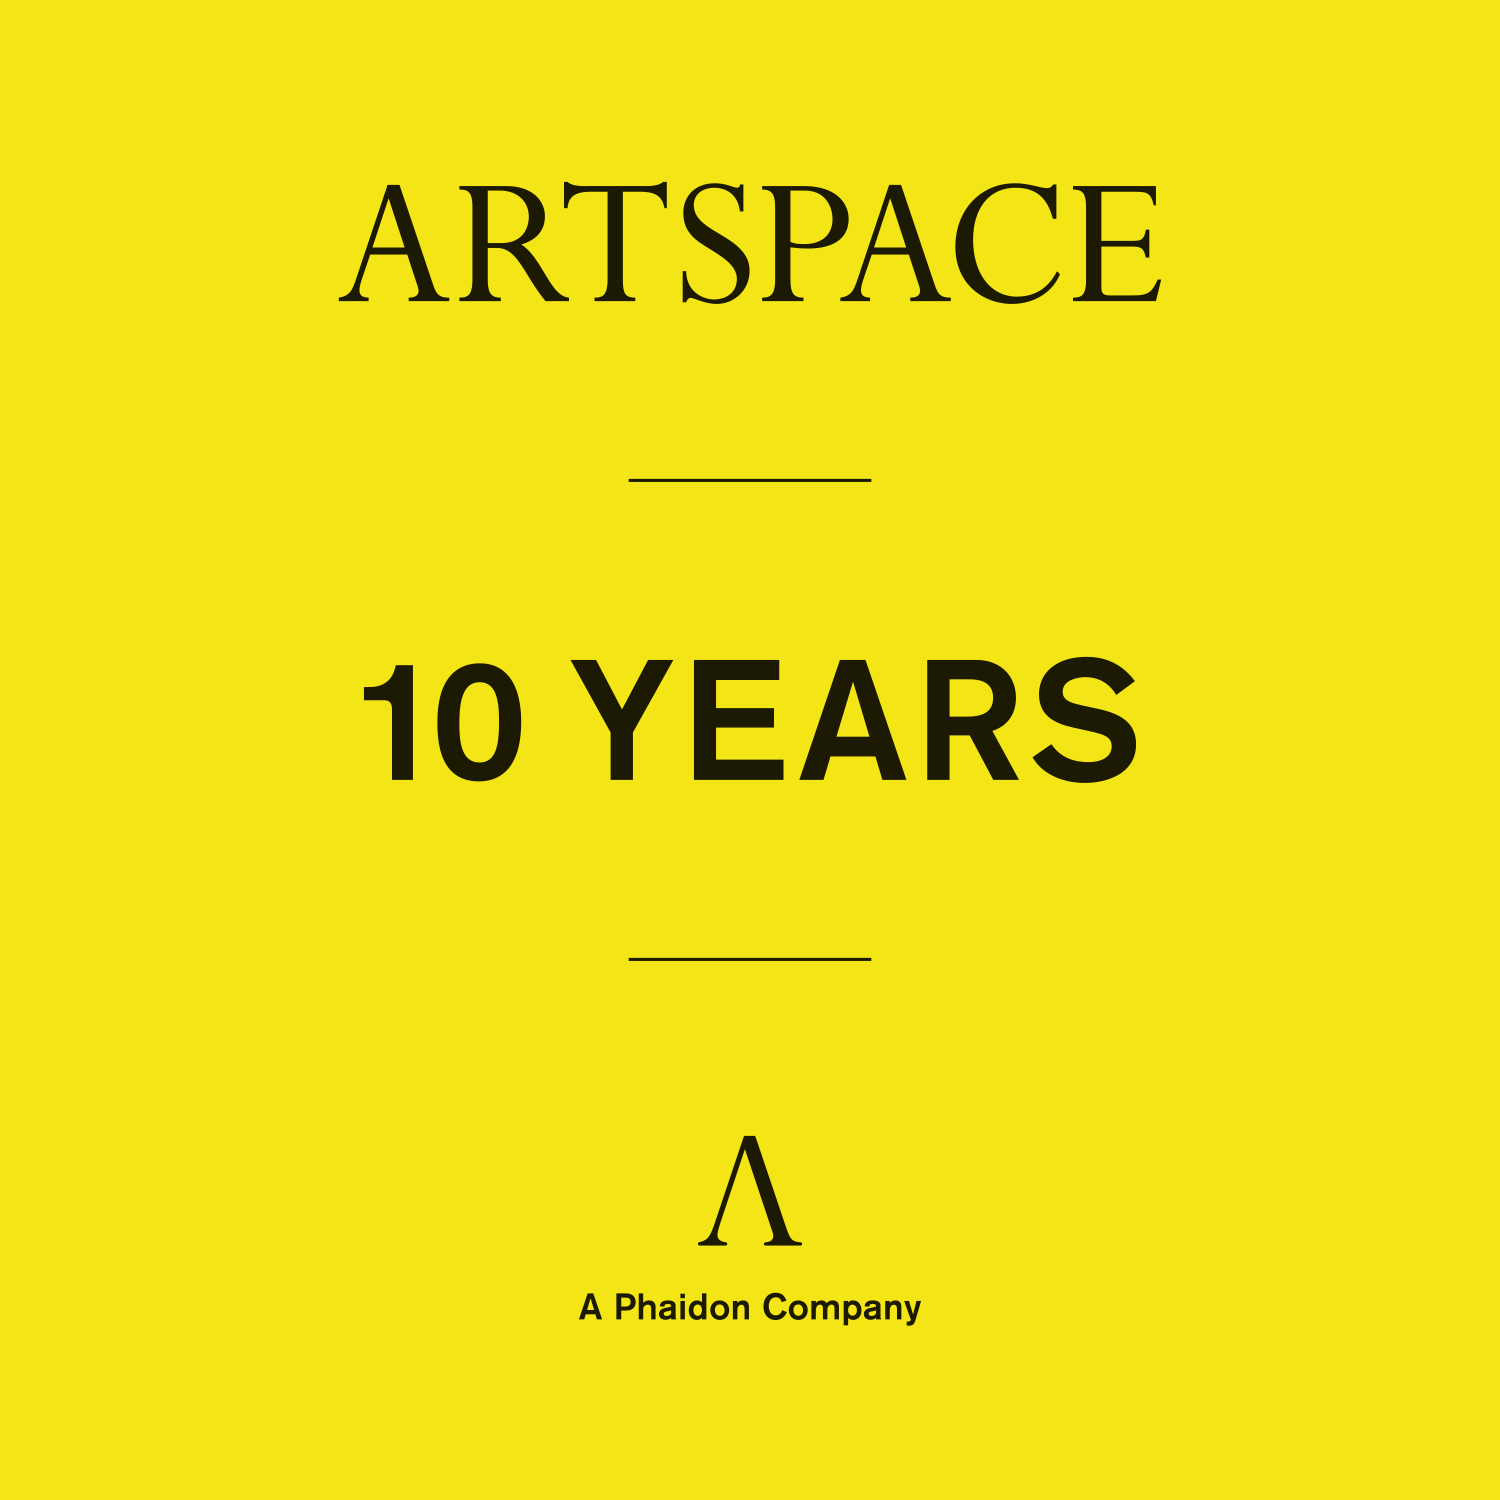 Artspace 10-Year Anniversary: Museums, Cultural Institutions, Non-Profits